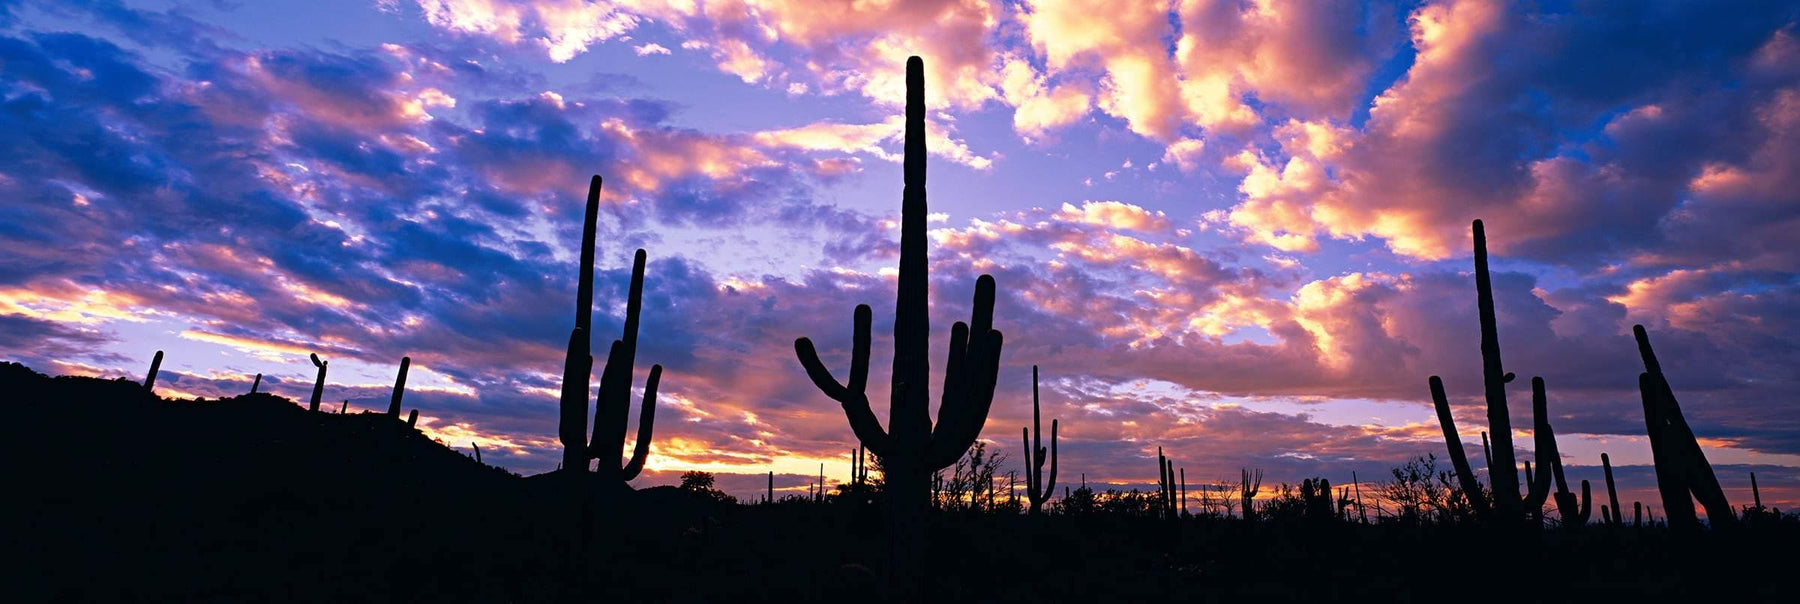 Cactus silhouettes during a cloudy sunset in the desert of Saguaro National Park Arizona